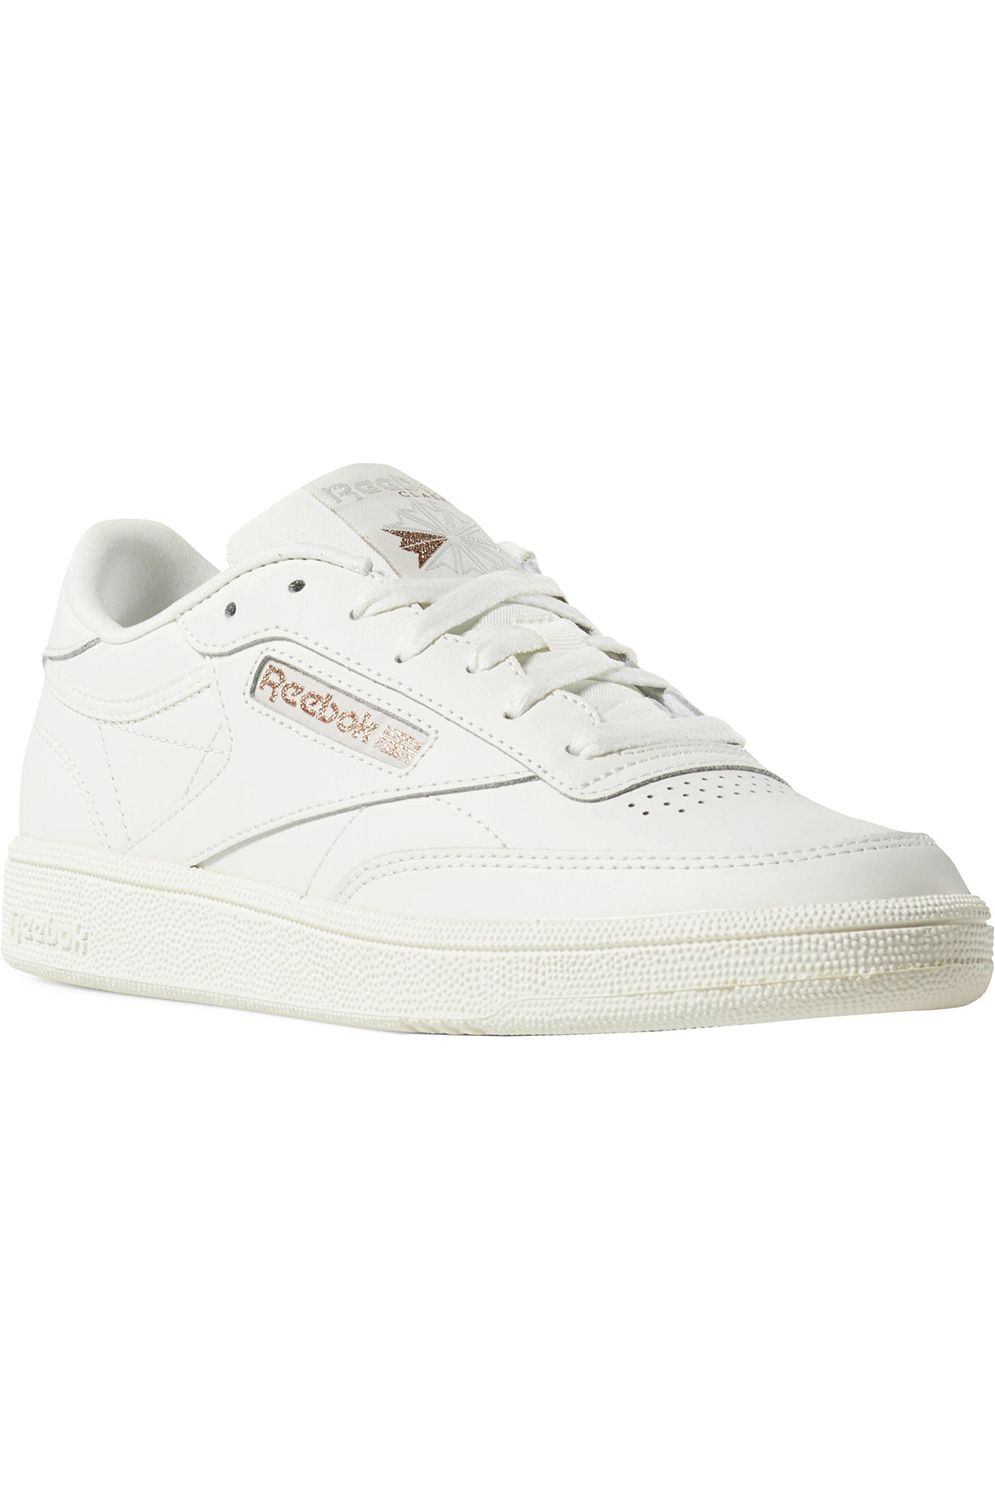 Tenis Reebok CLUB C 85 Cv-Chalk/Rose Gold/Paper White